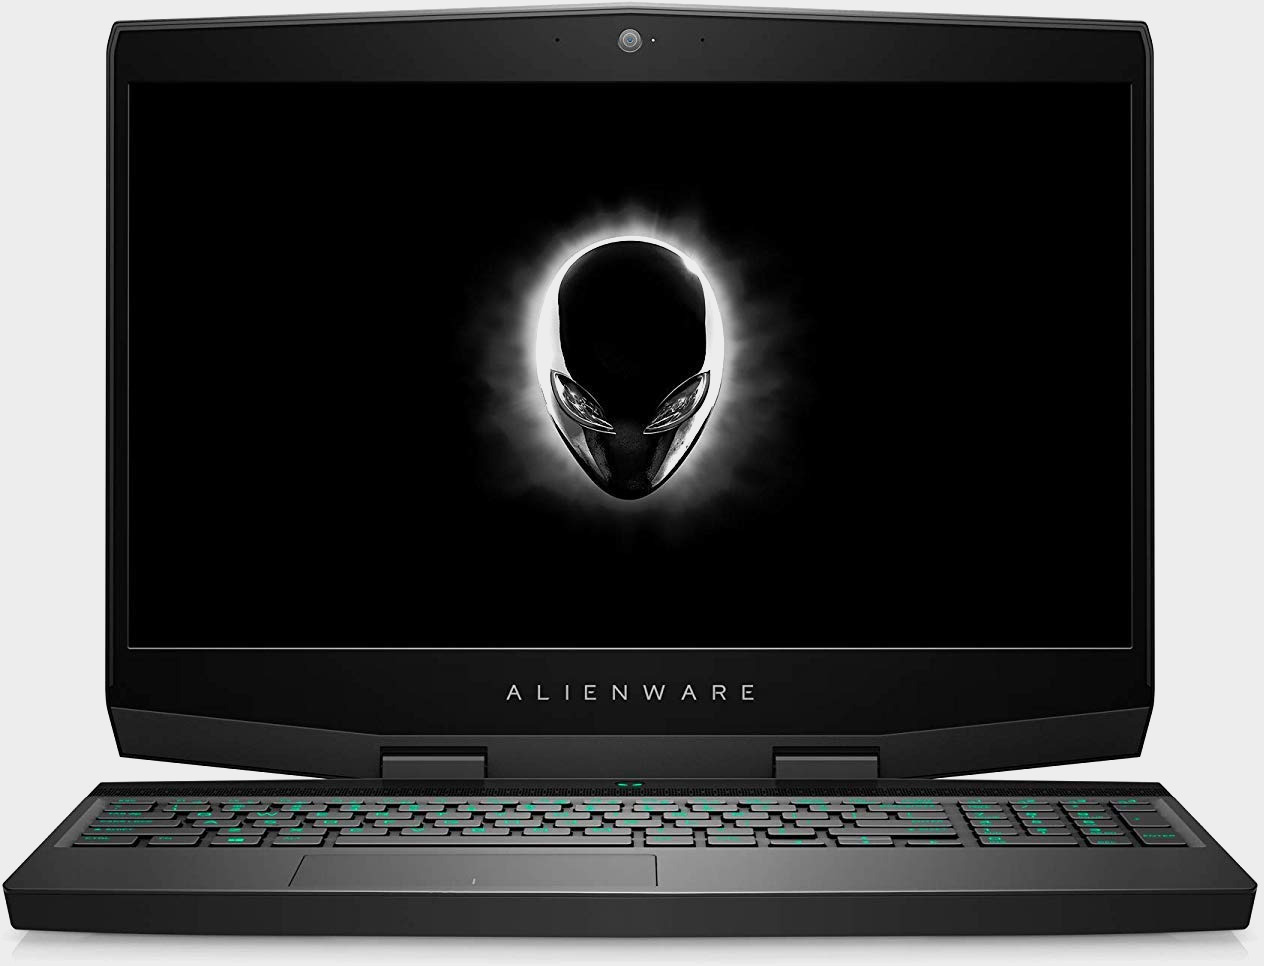 Dell's Alienware m17 and m15 gaming laptops are both on sale today   PC Gamer